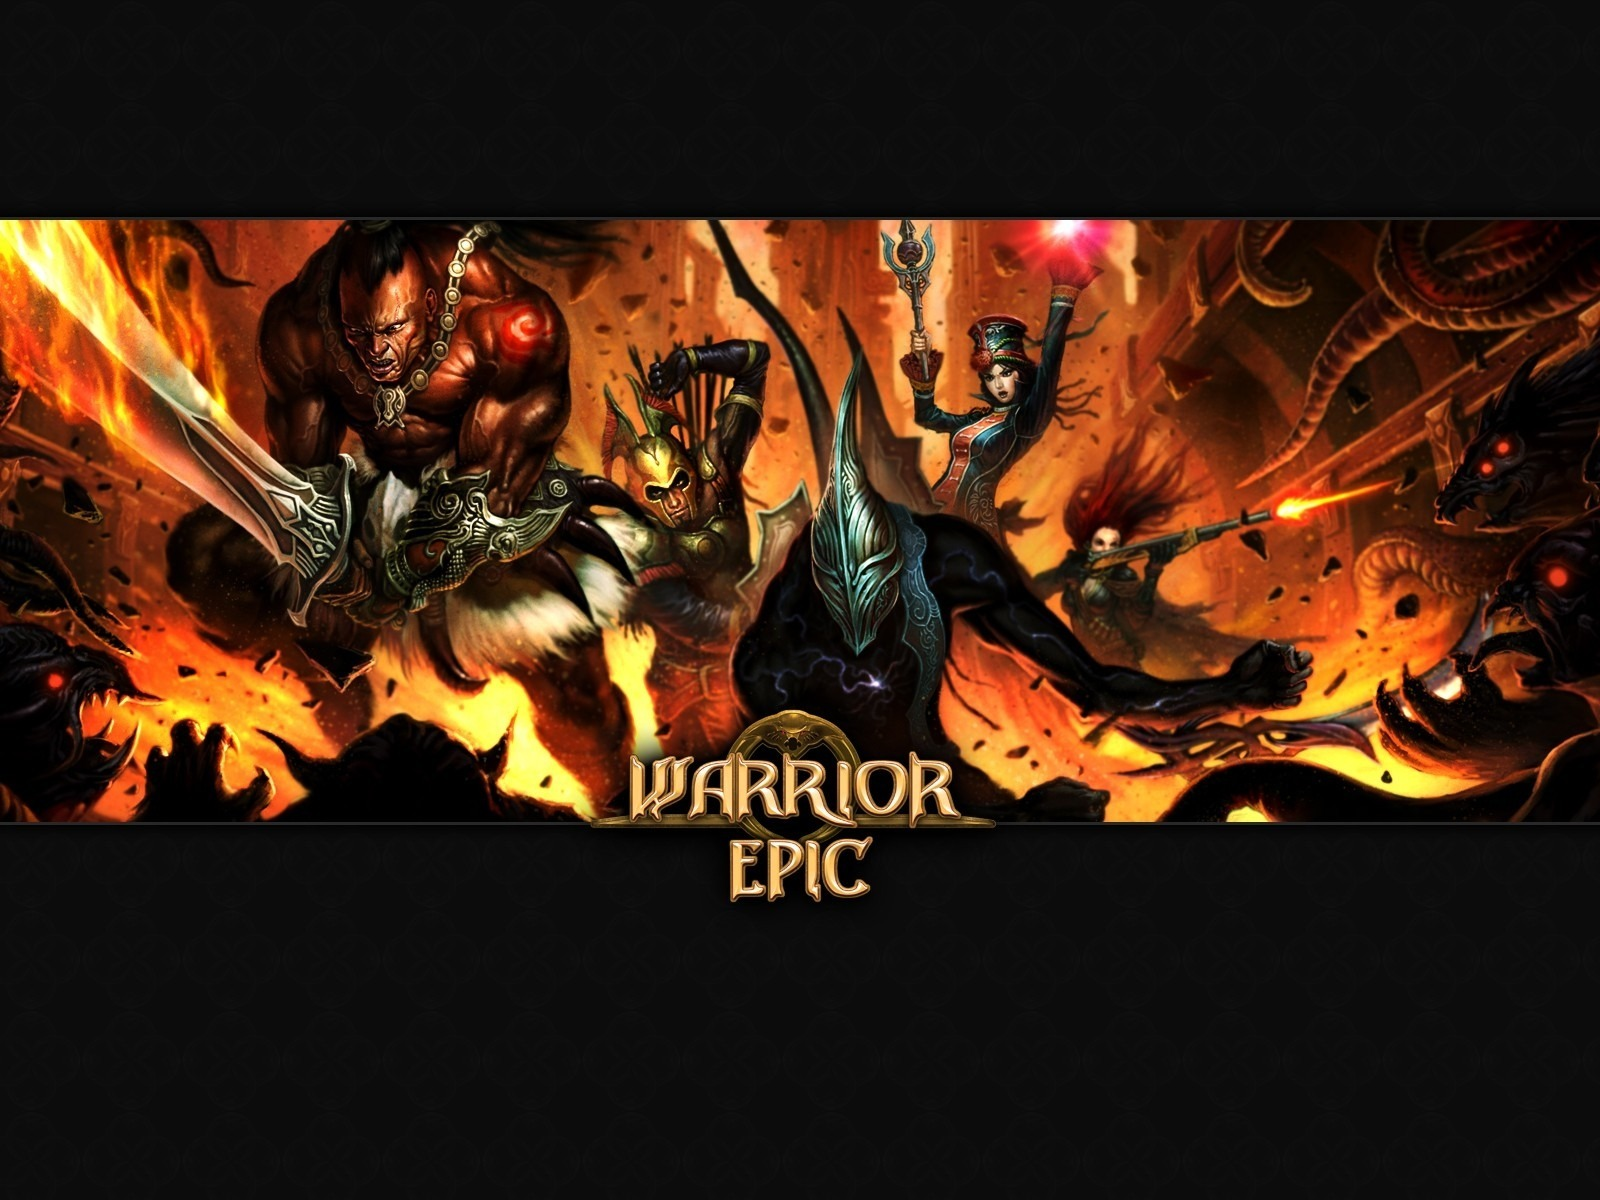 Warrior Epic wallpaper